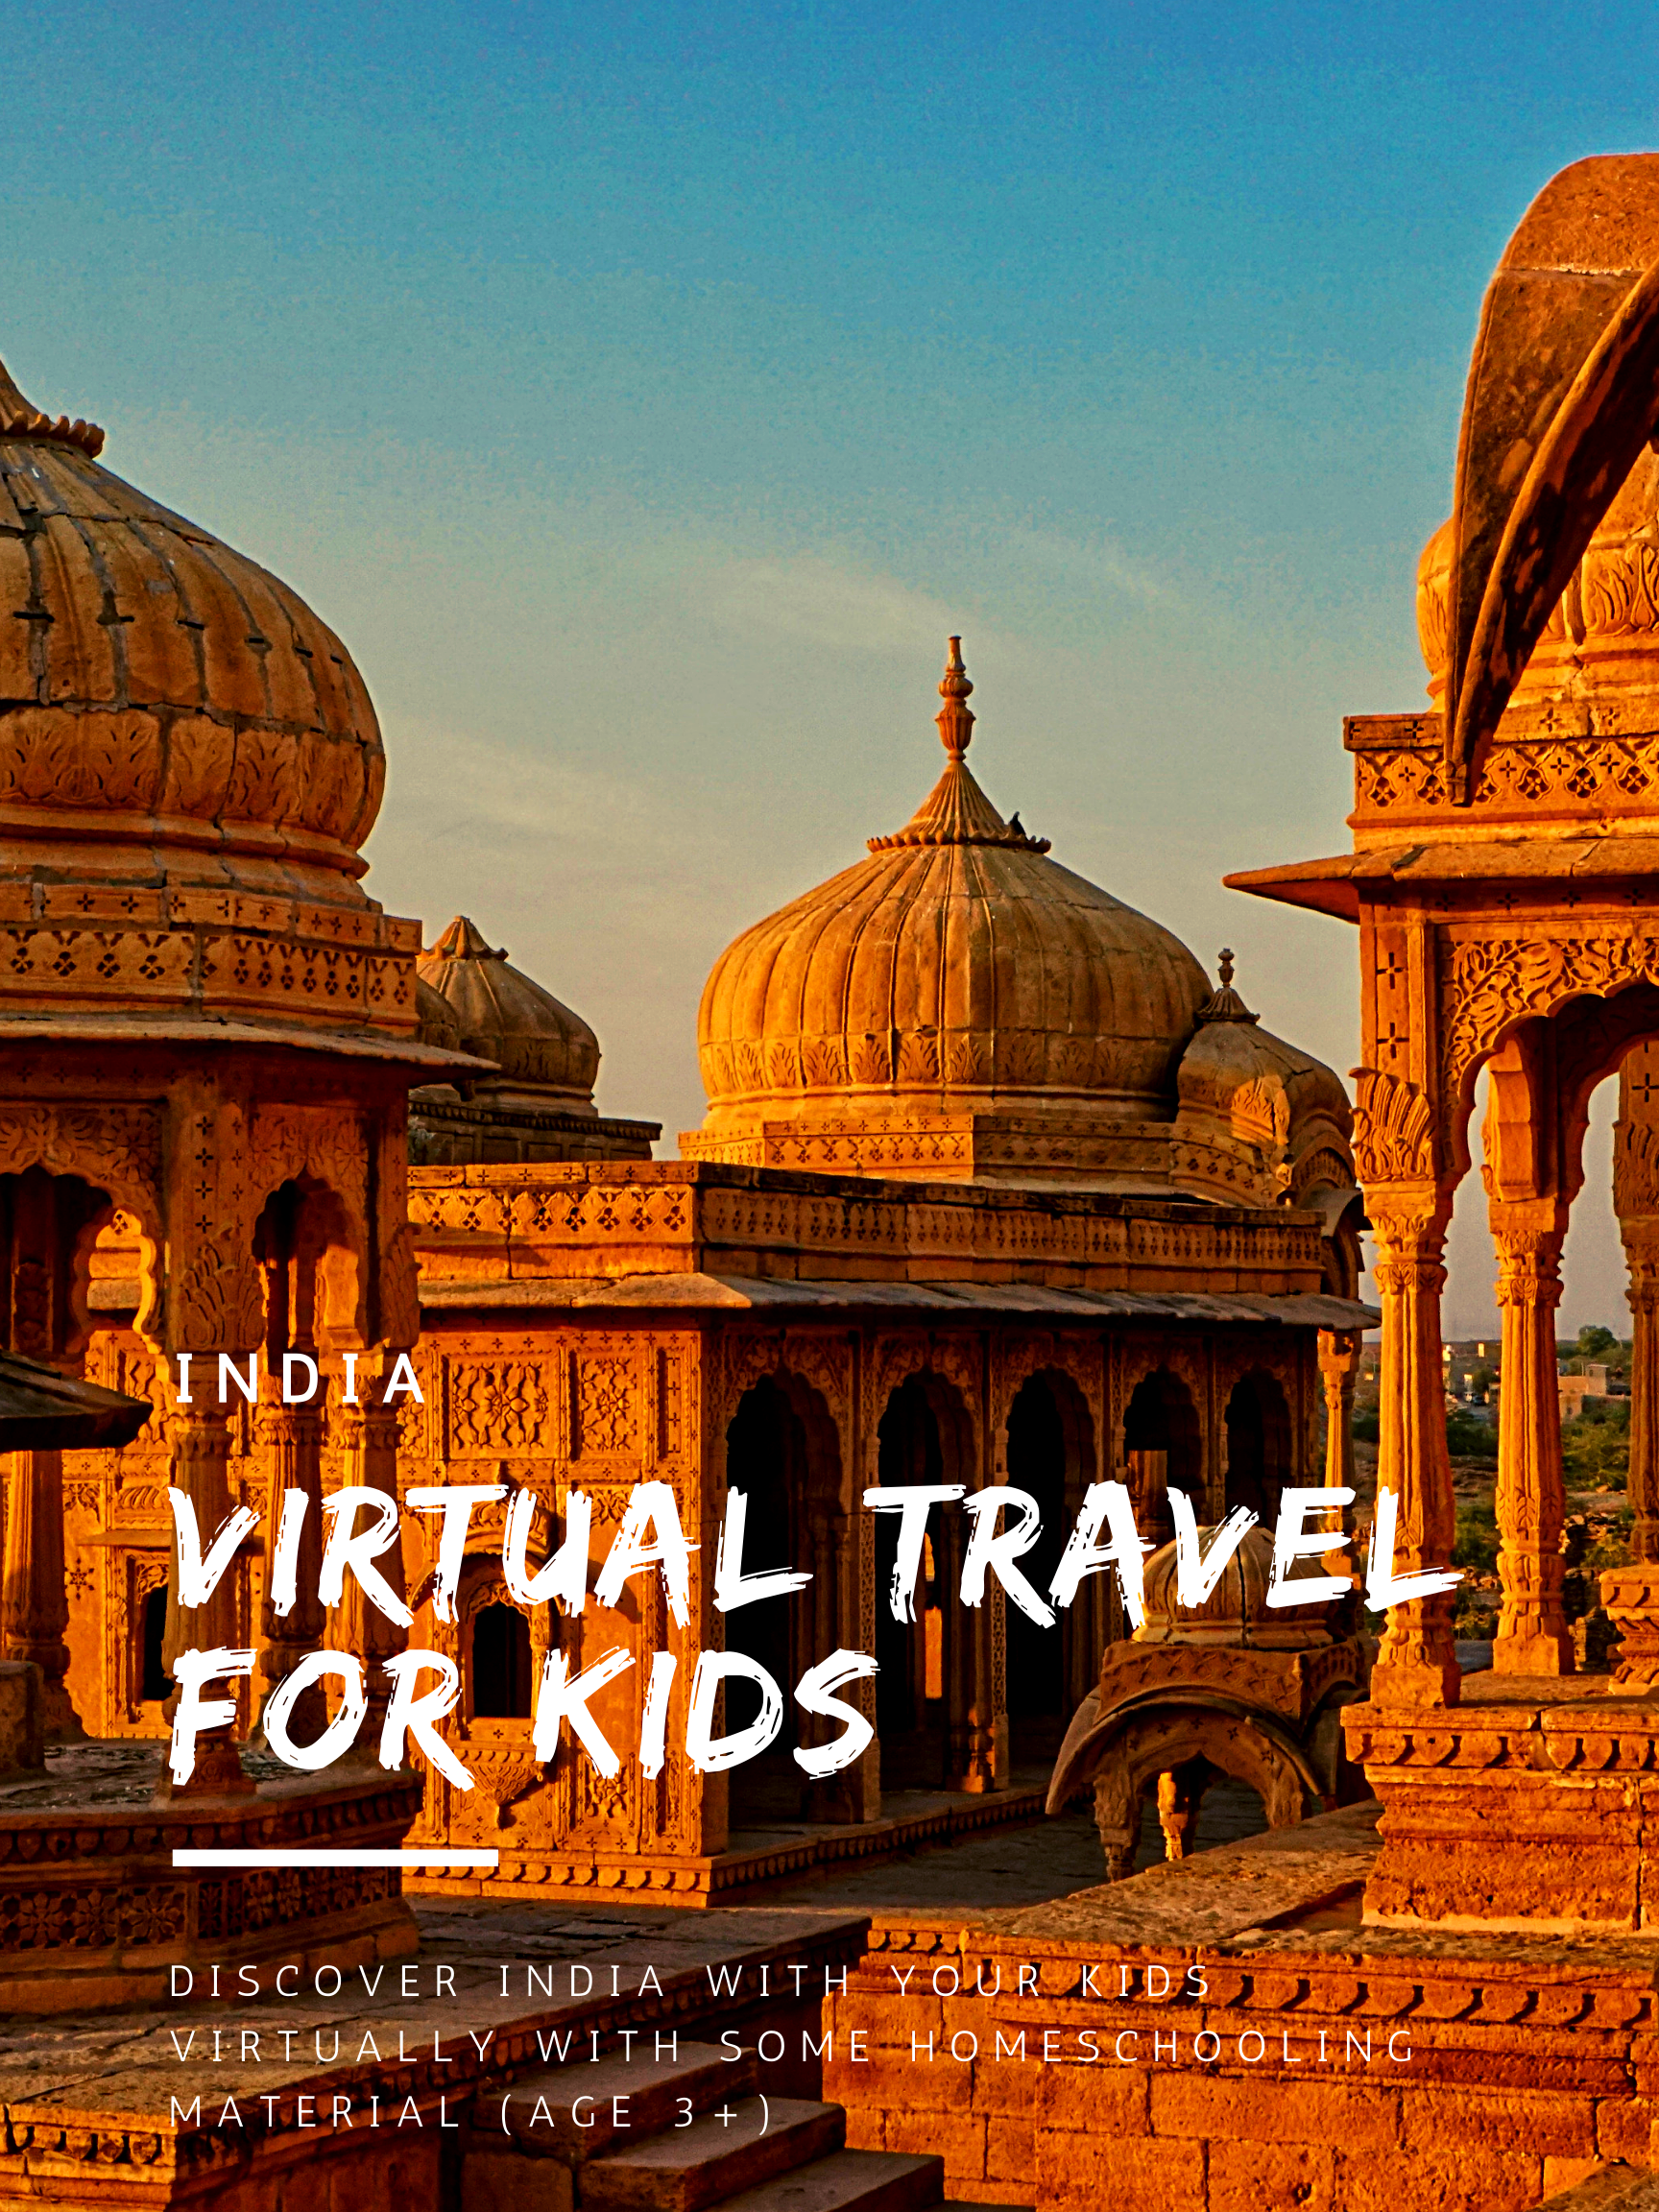 Virtual Travel For kids - kid friendly worldschool activities to learn about india. #homescool #worldschool #kidfriendly #virtualtravel #india #tajMahal #kidsactivities